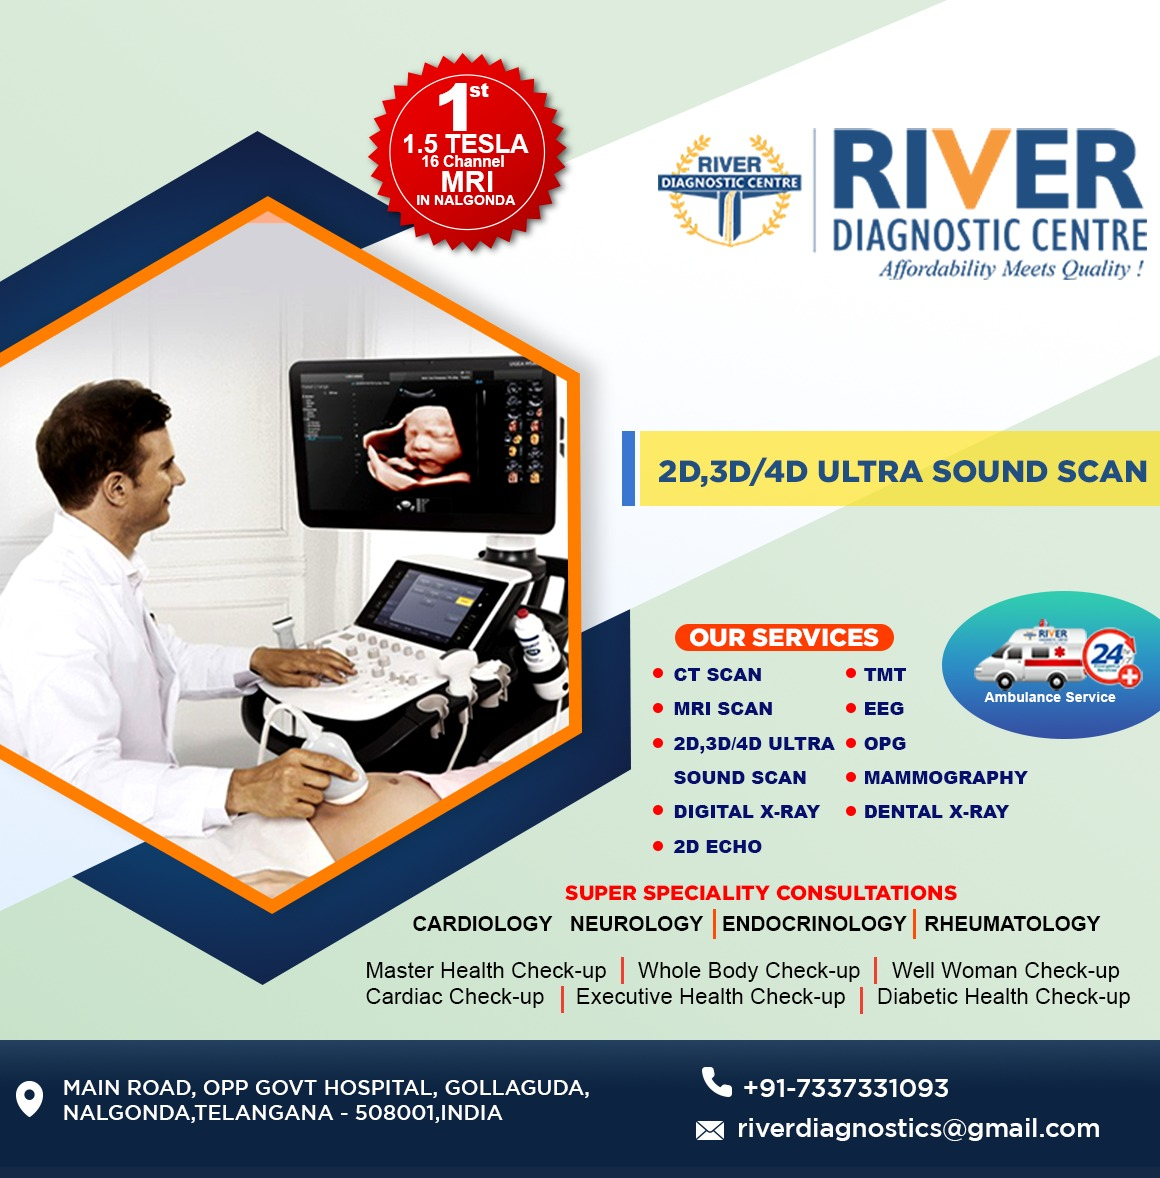 Diagnostic |MRI |CT Scan Center| health care services in Nalgonda and Telangana